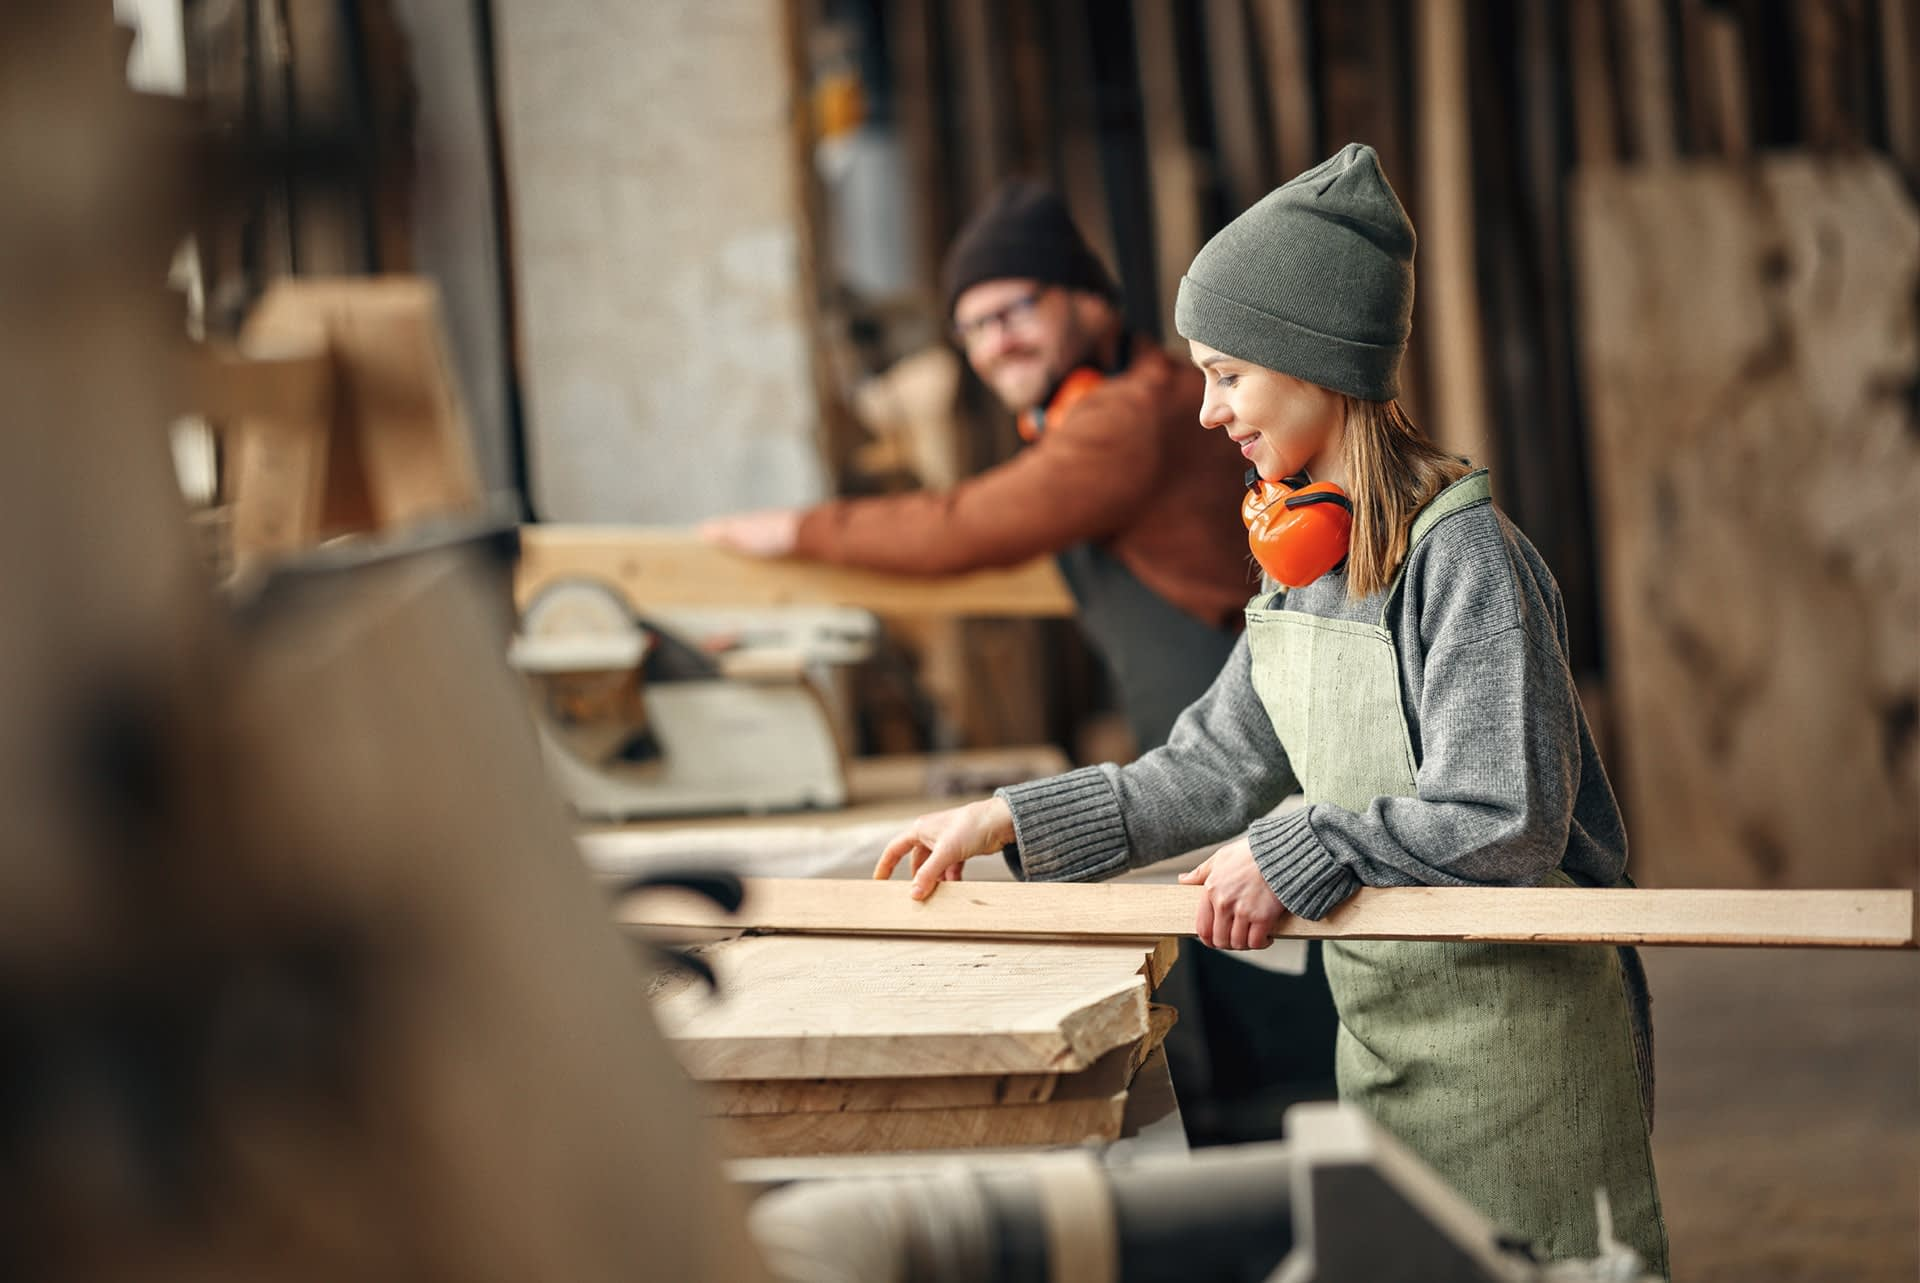 joinery-par-timber-sawn-planed-cut-to-size-workshop-planed-all-round-grade-timber-joiners